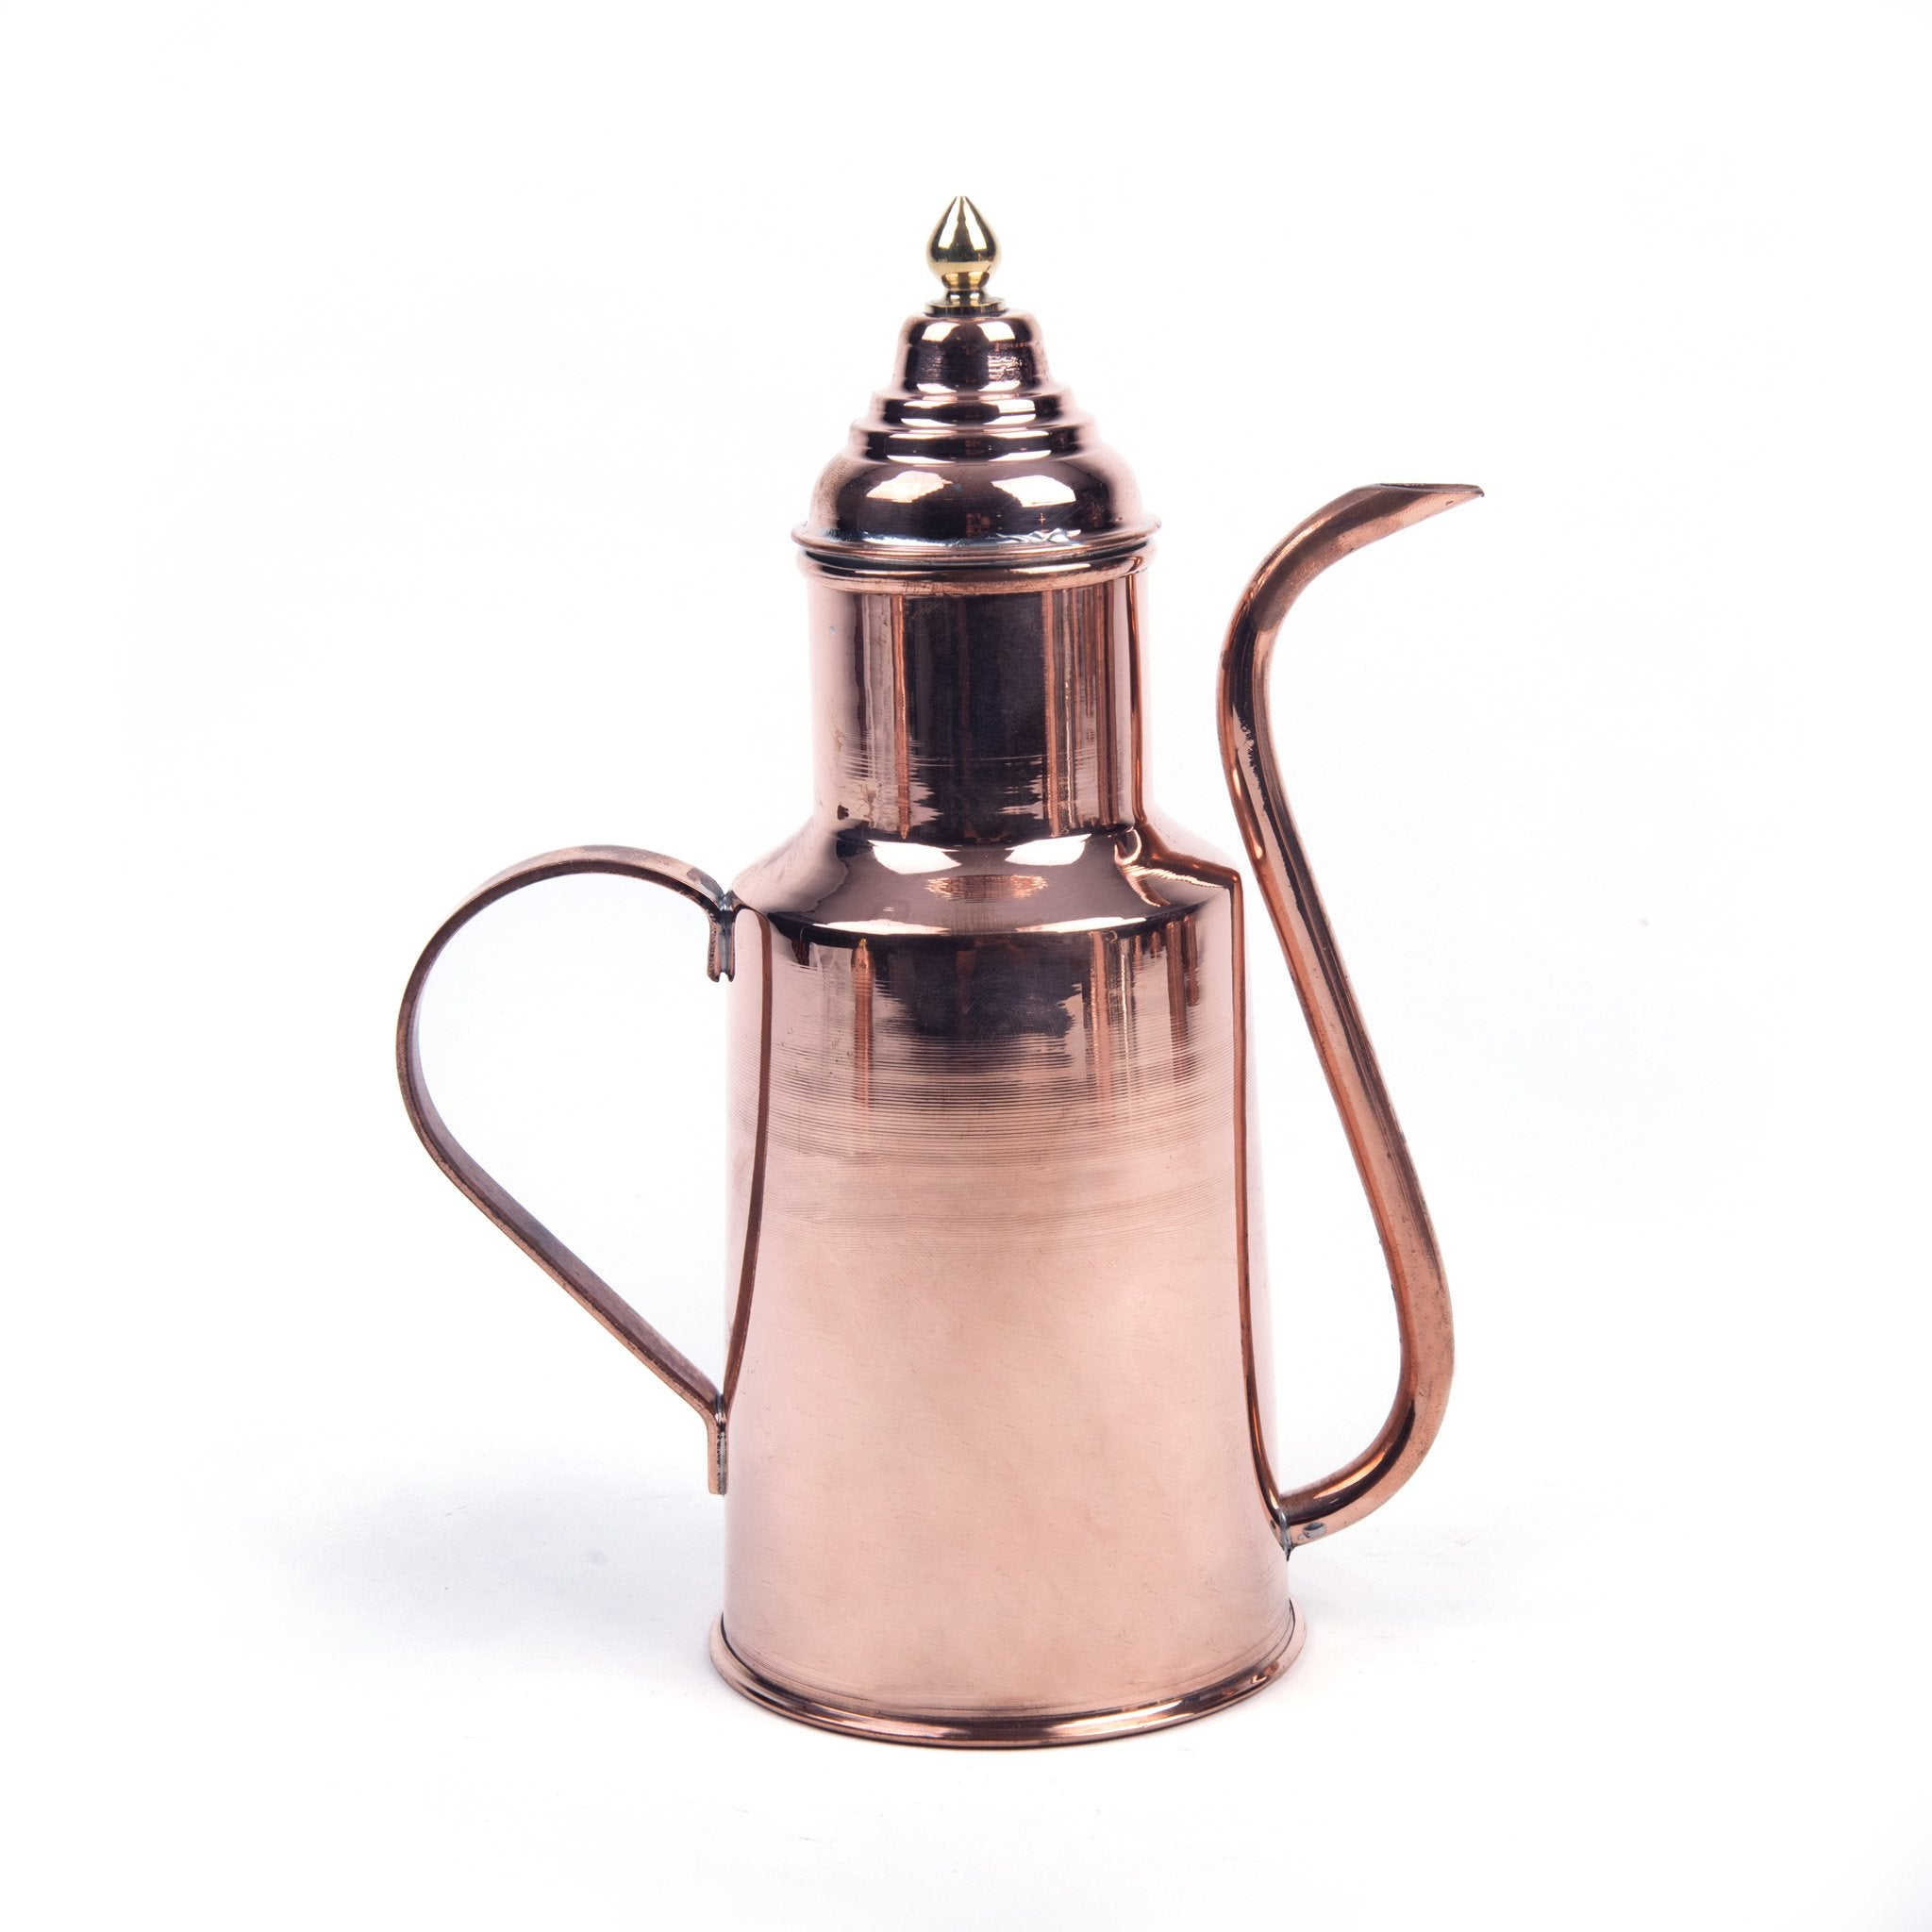 Handmade Copper Oil Bottle-1